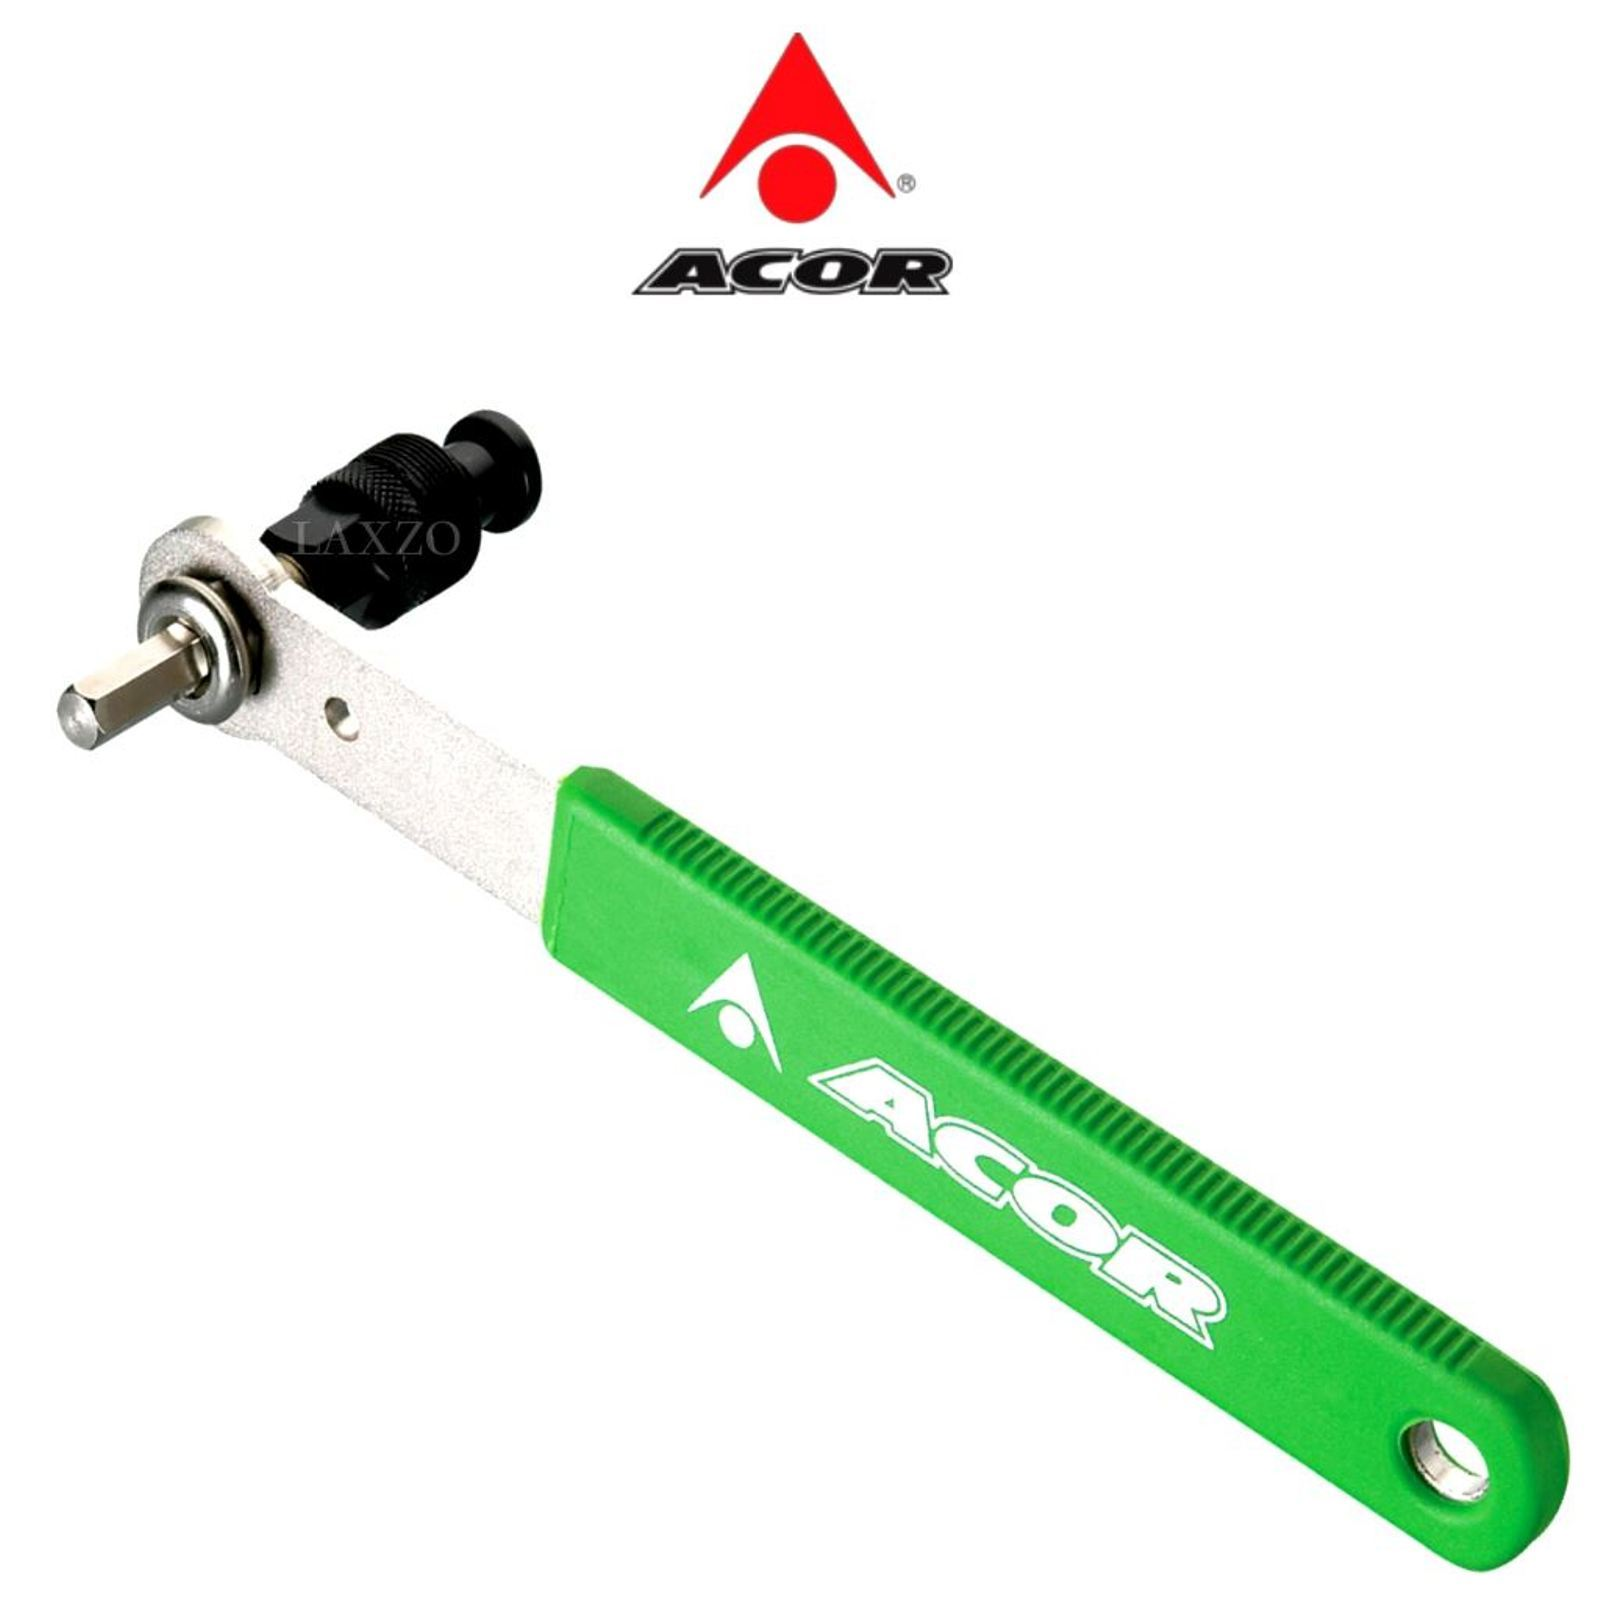 Octalink Splined Axles with 8mm Hex Key Acor Crank Remover Tool for Isis